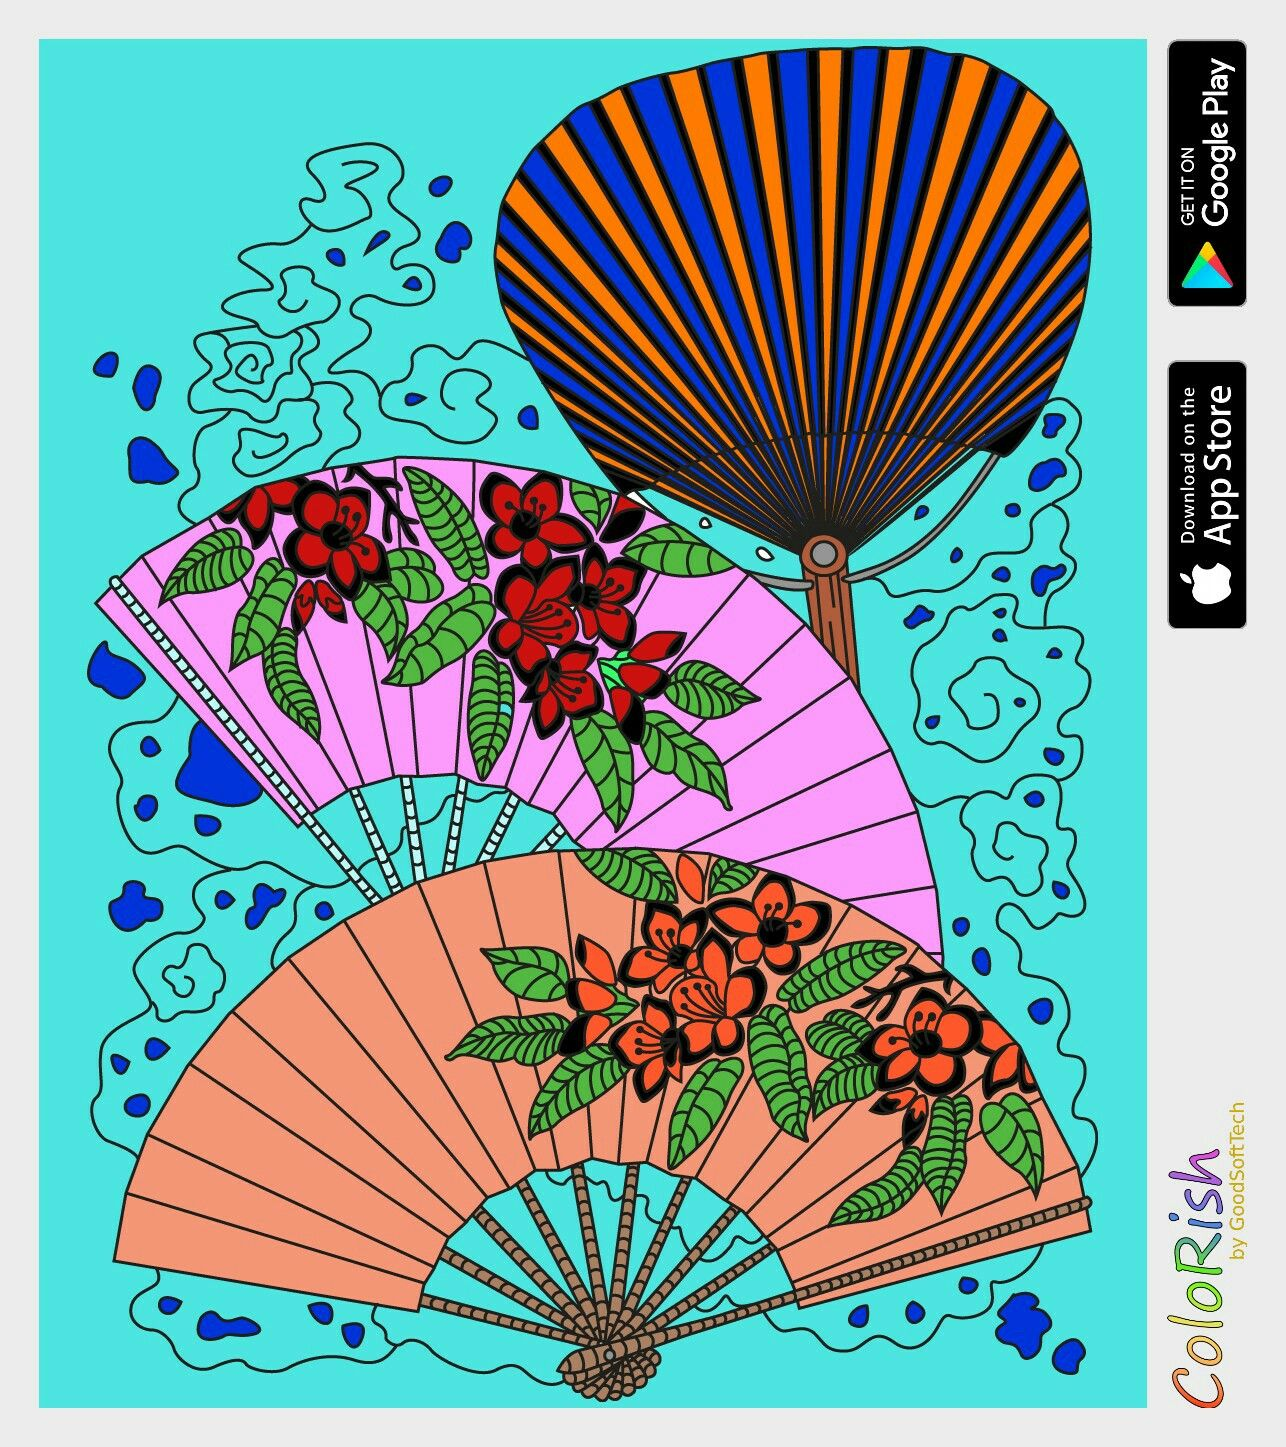 Pin by April Hanson on Coloring pages, Play store app